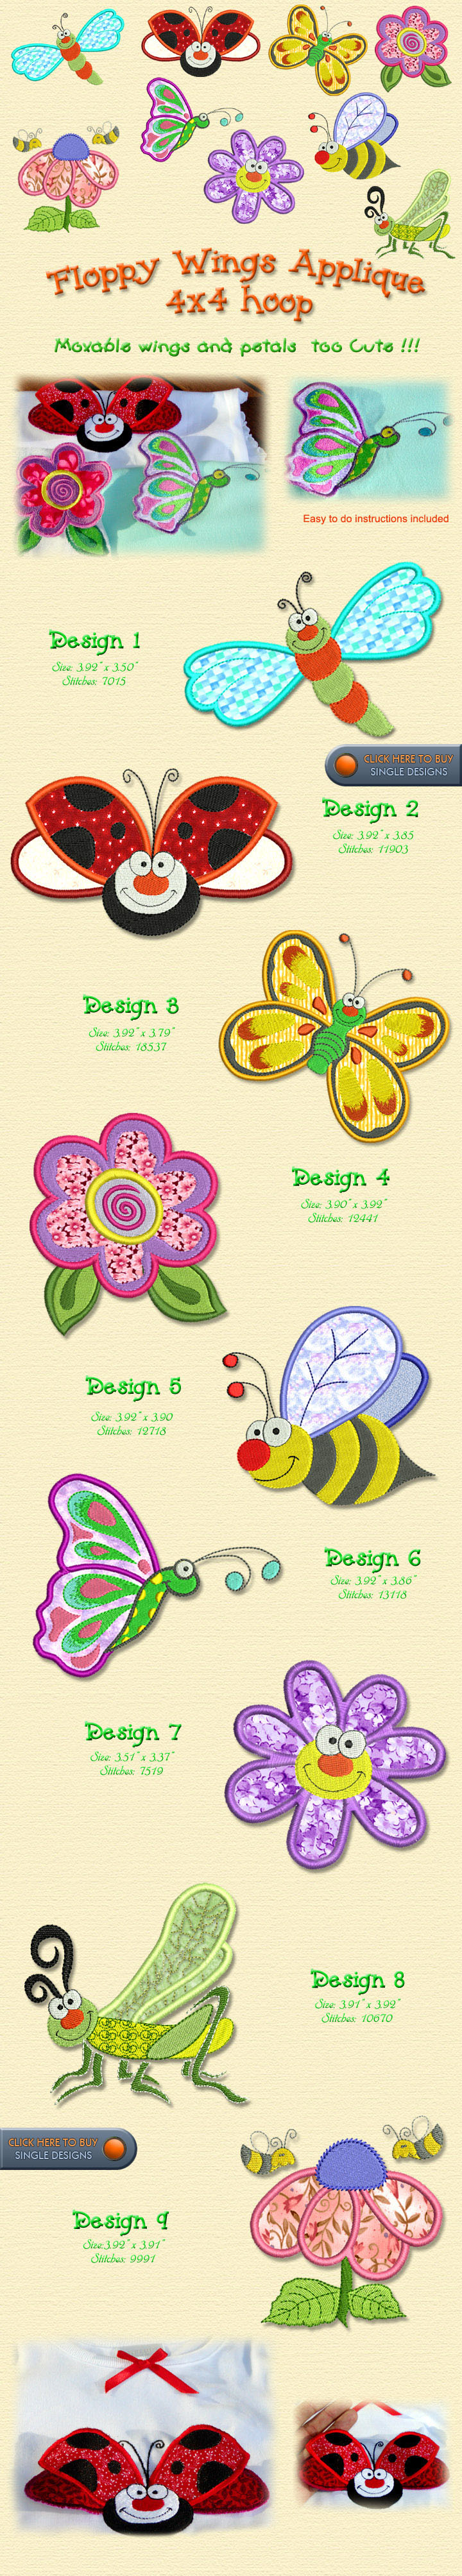 Appliique Embroidery Designs Free Embroidery Design Patterns Applique